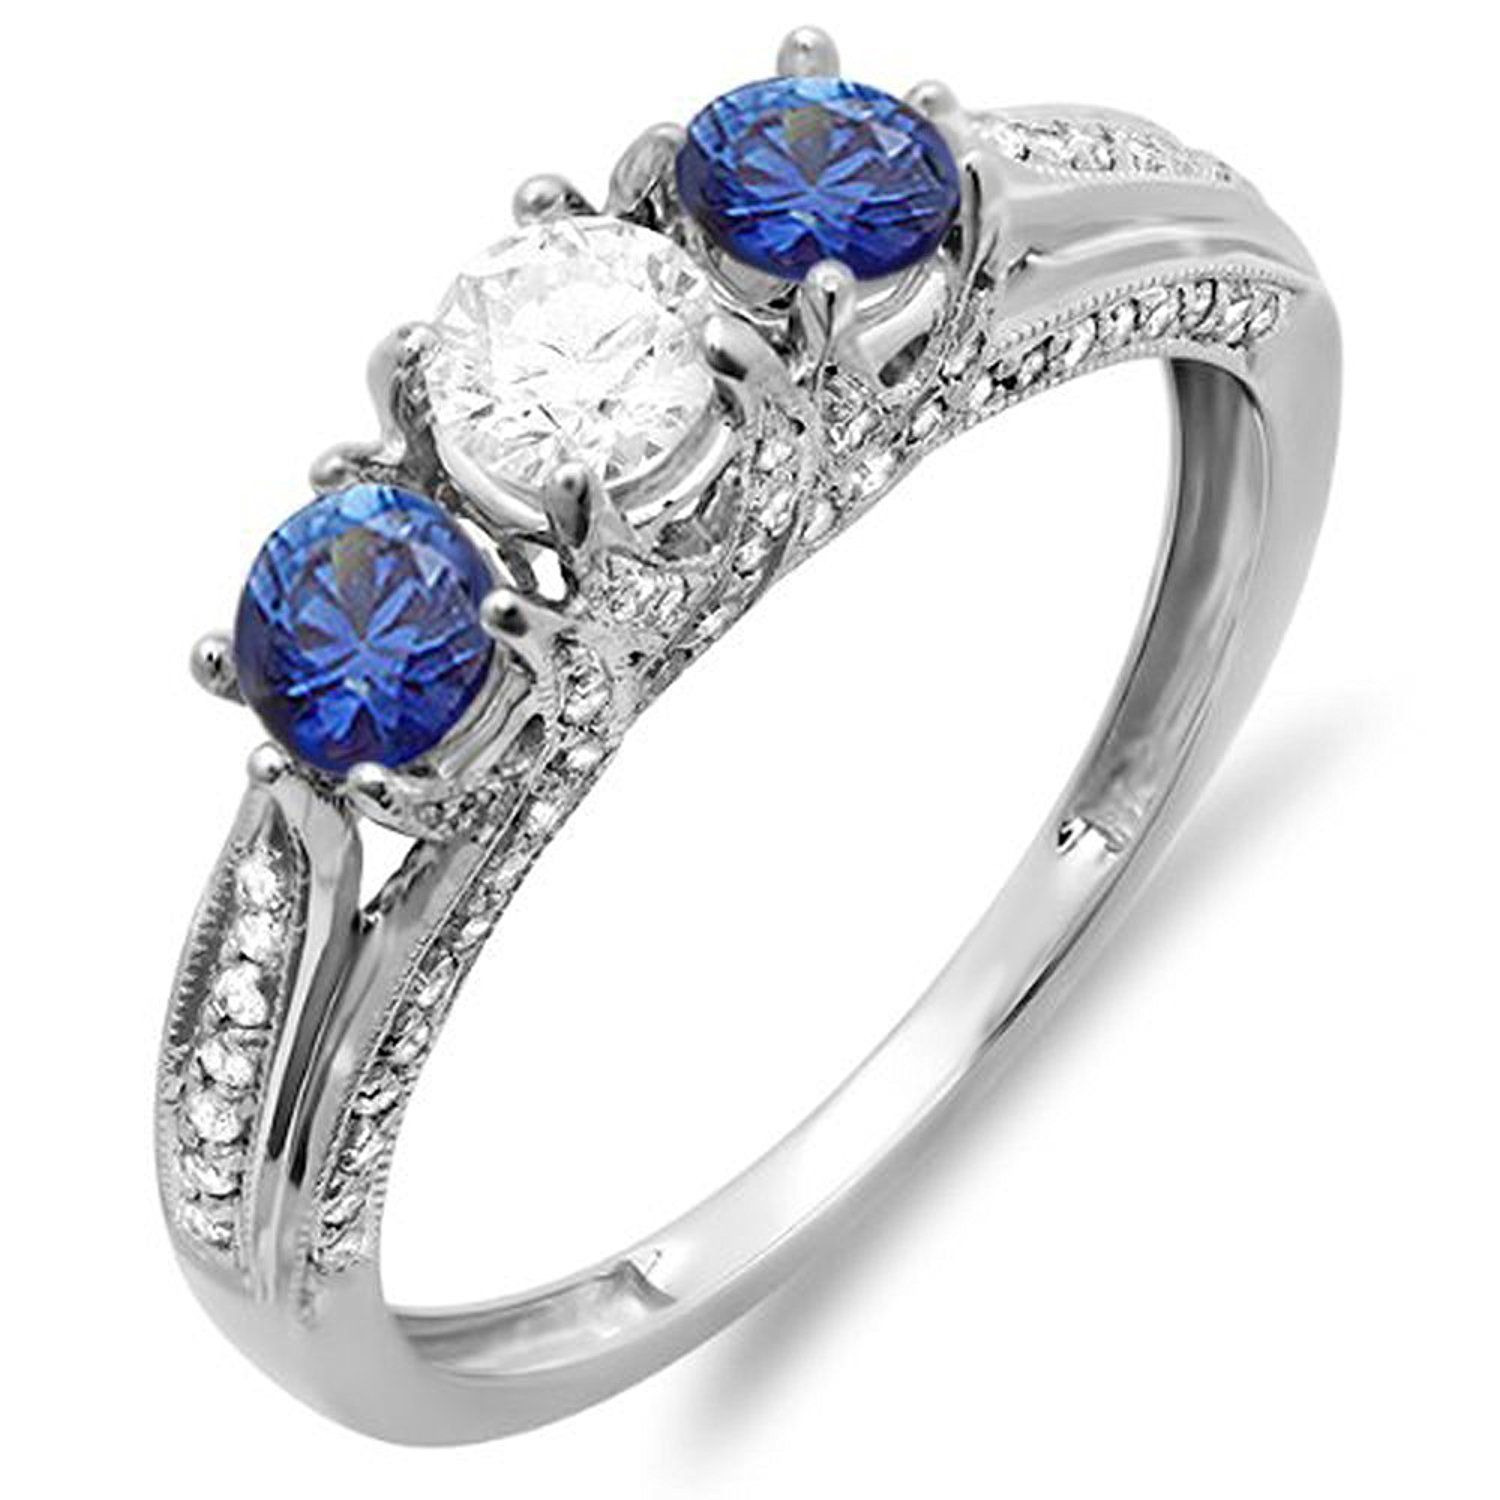 diamond attachment inexpensive jewellery engagement real reviews rings nexus beautiful wedding of with affordable